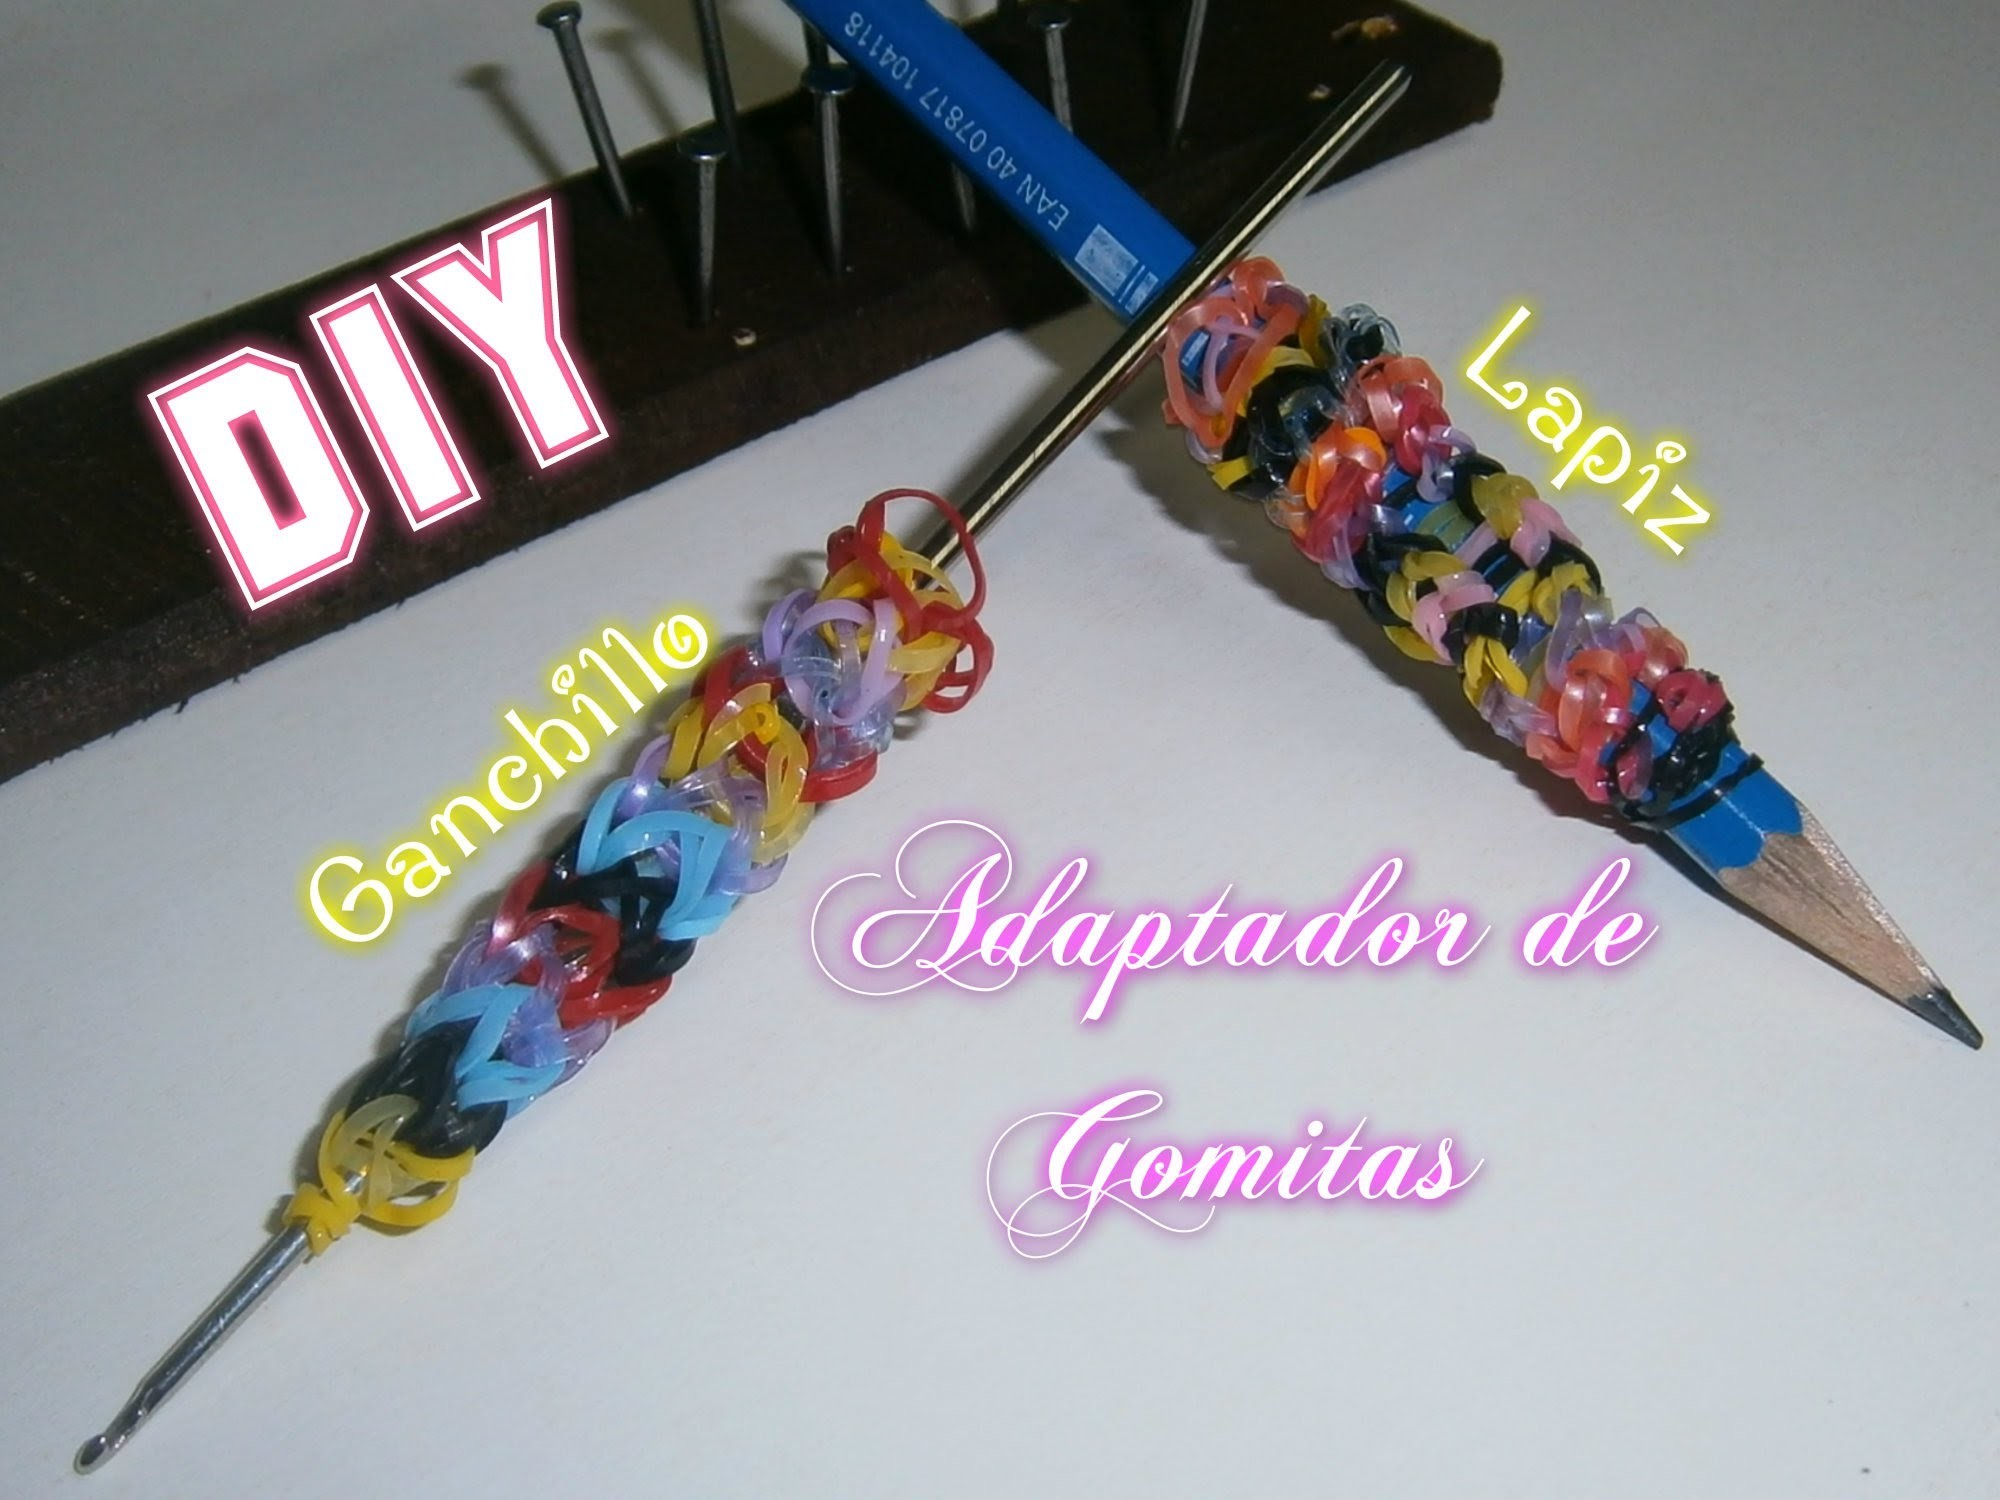 Adaptador para Lapiz o Ganchillo con gomitas.HOOK COVER & PENCIL COVER